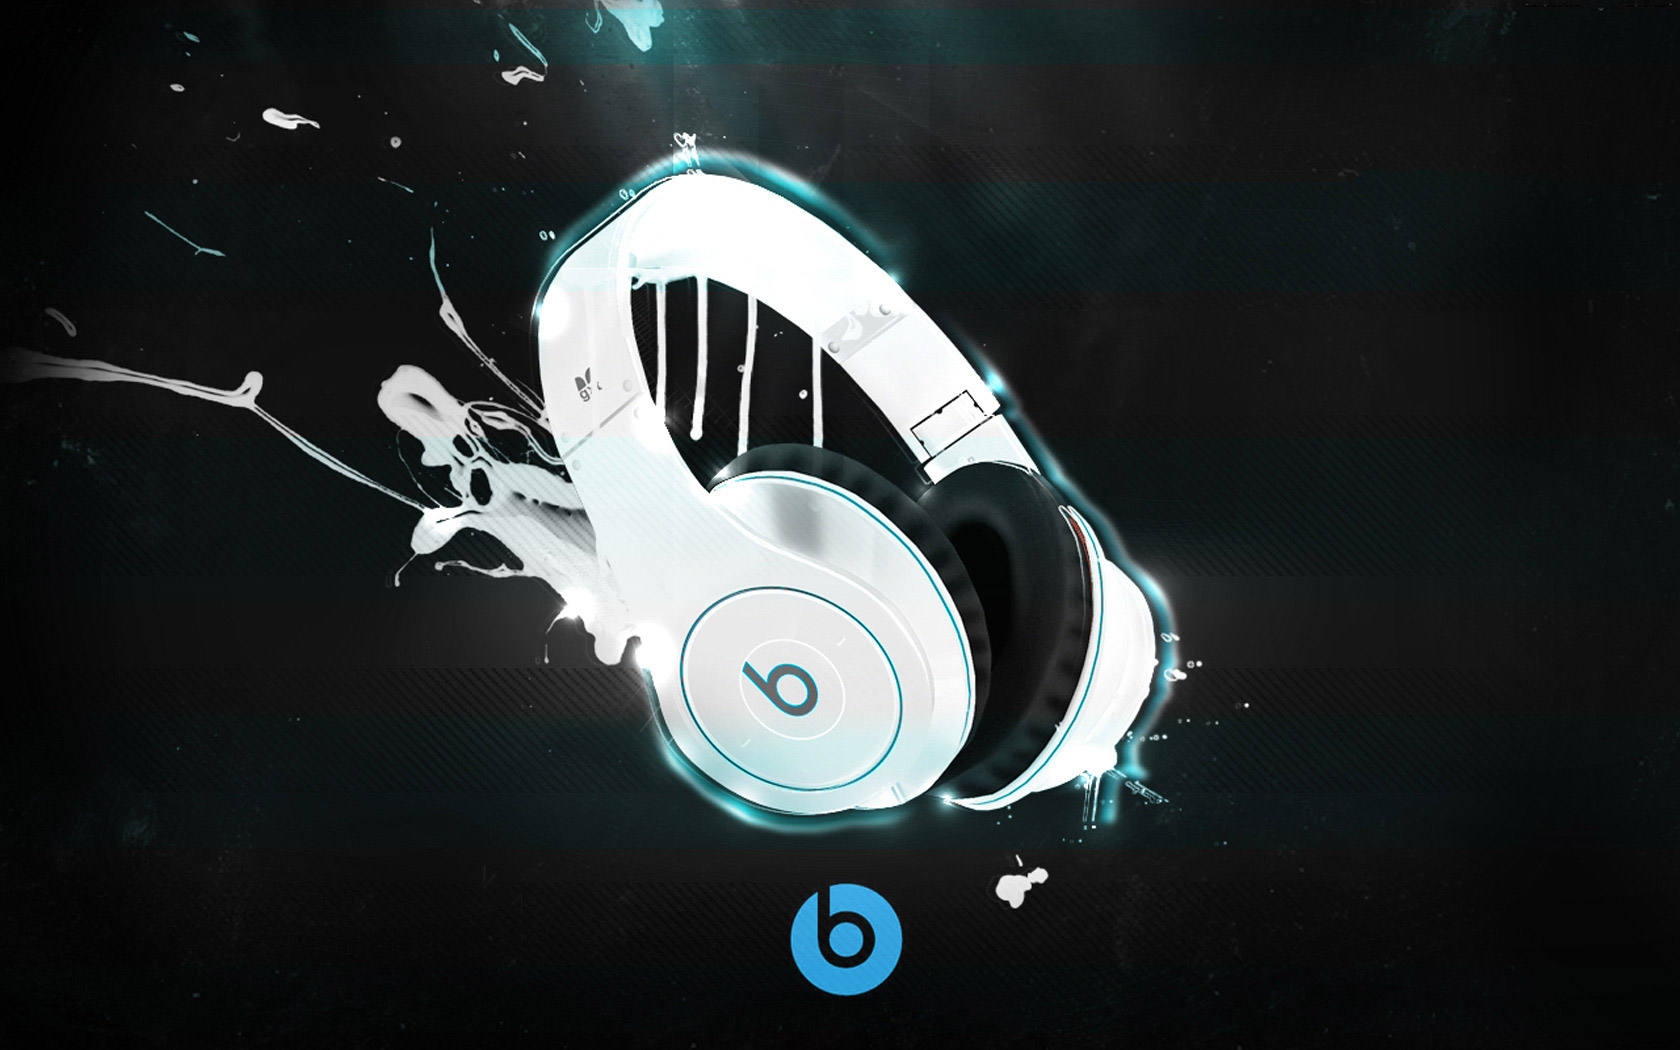 beats by dr dre is splitting from monster cable